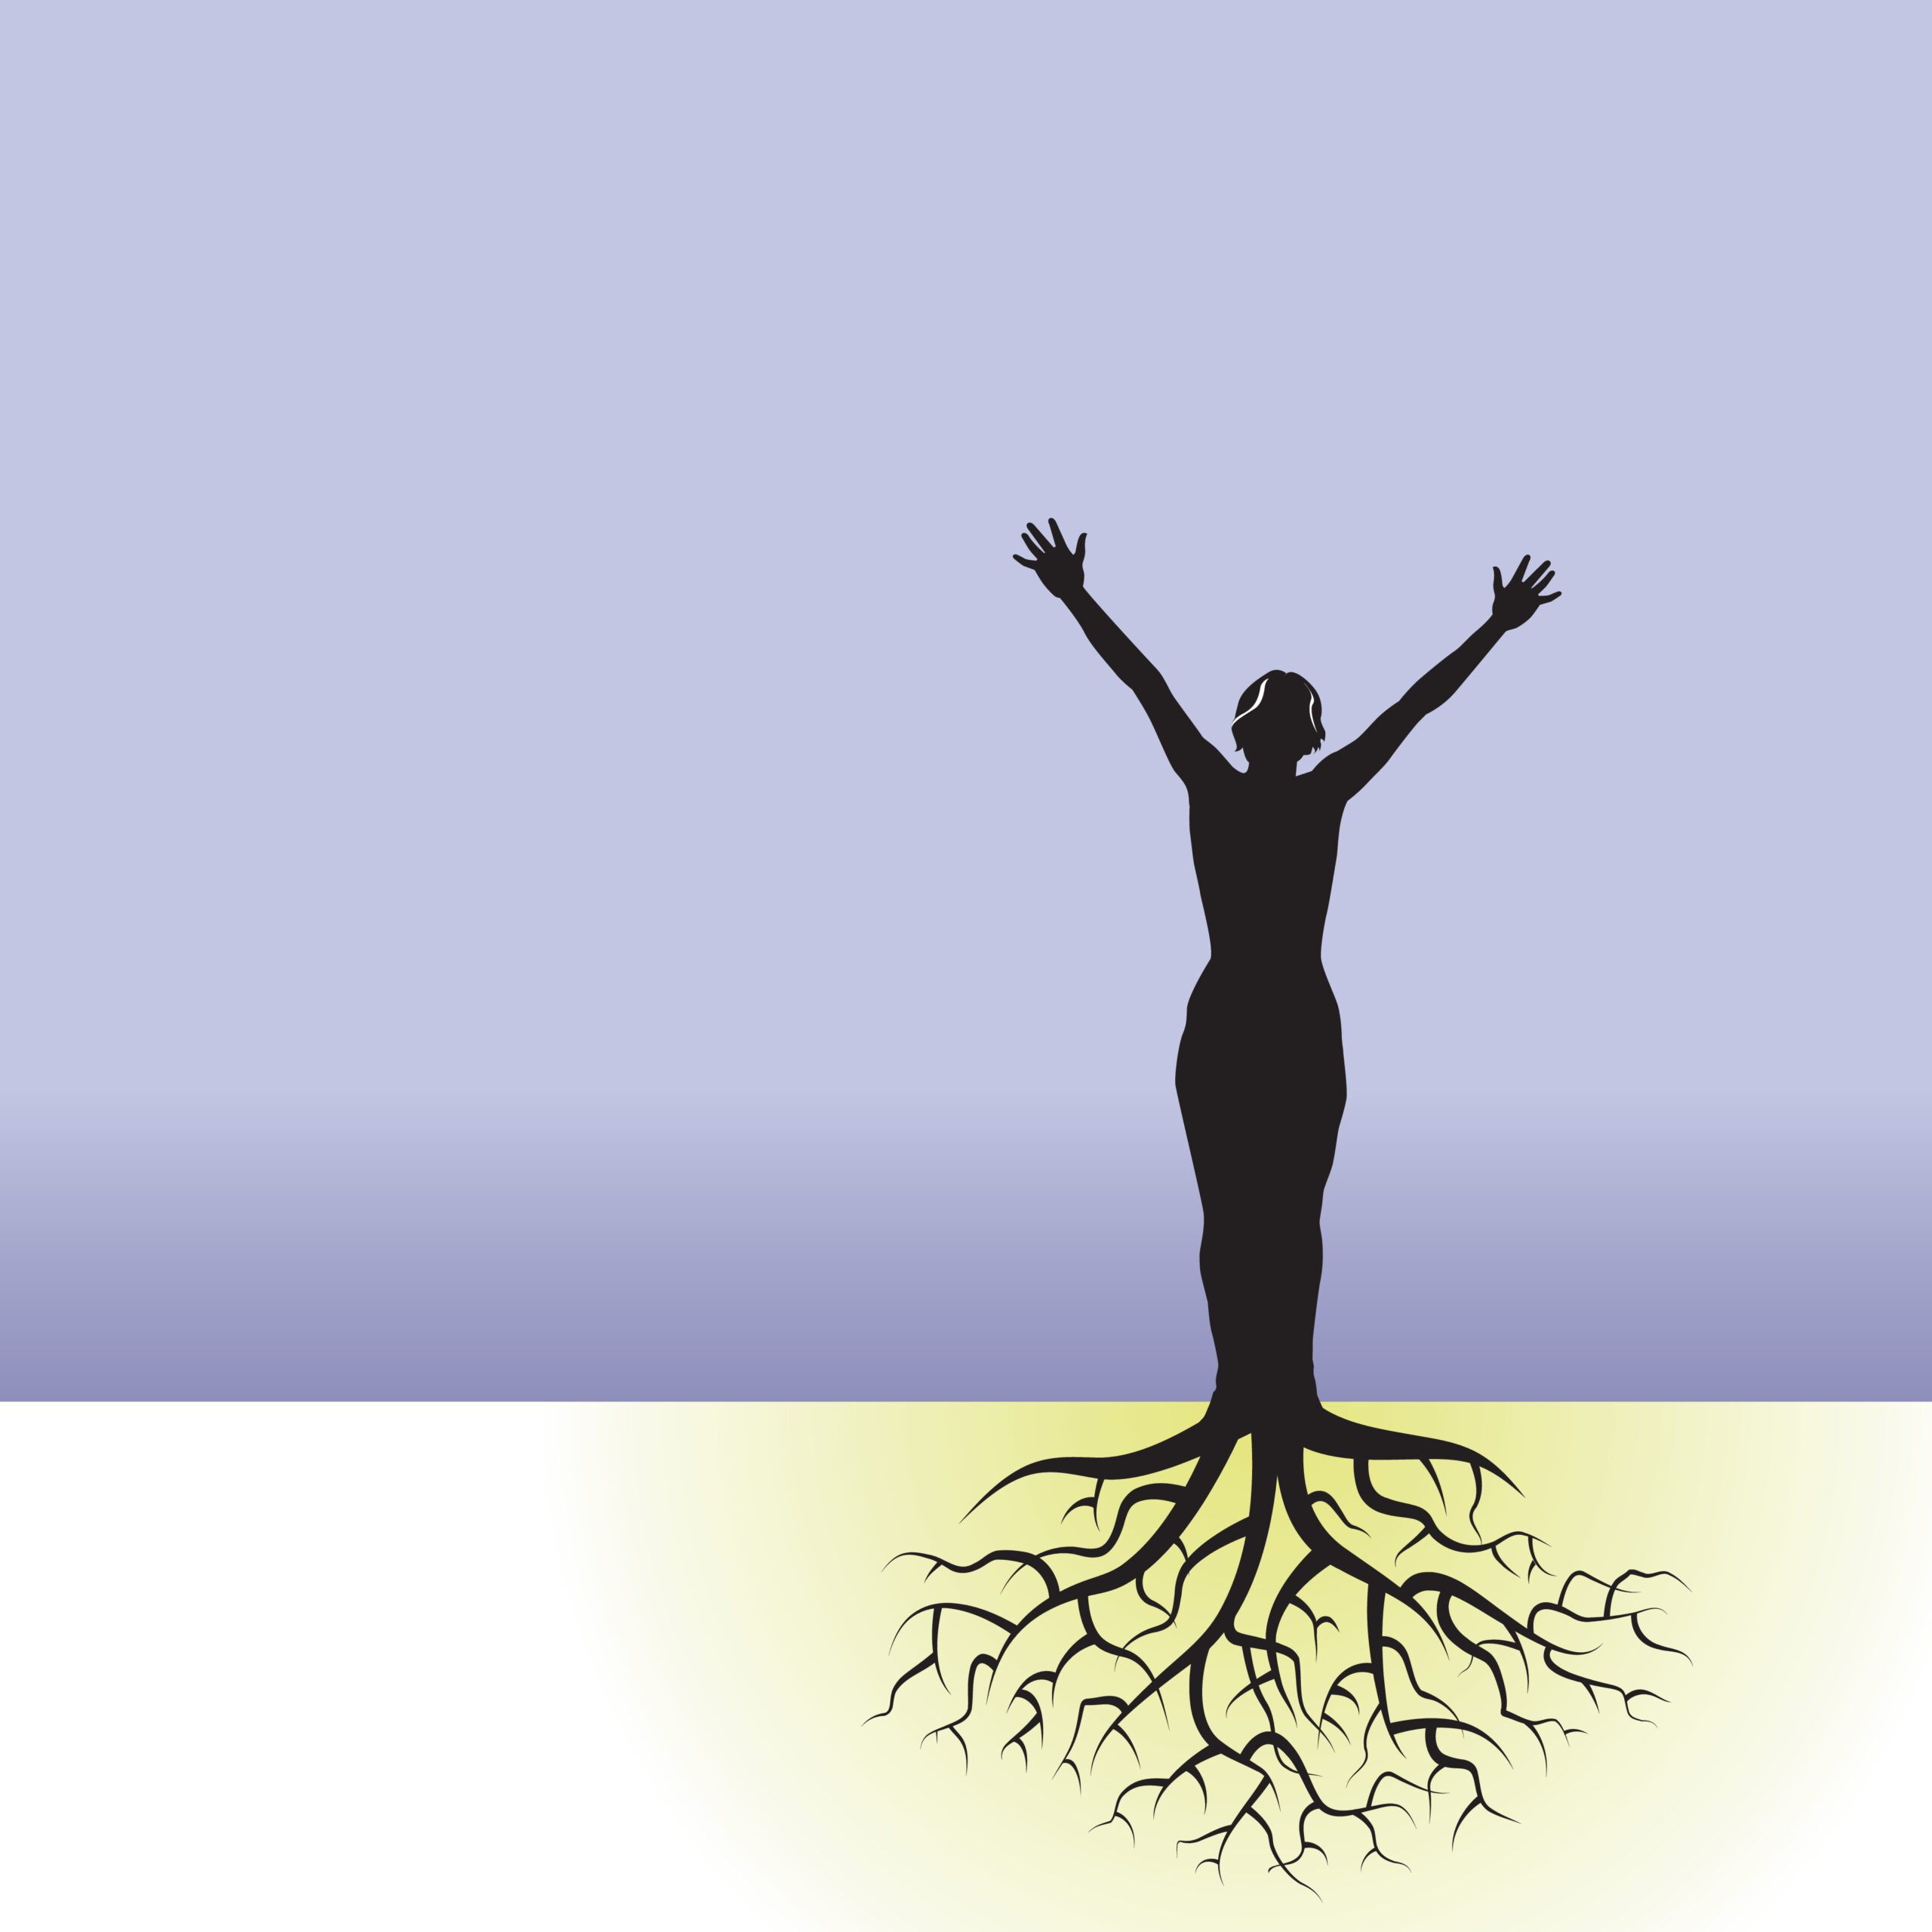 This vector background has a woman with tree roots